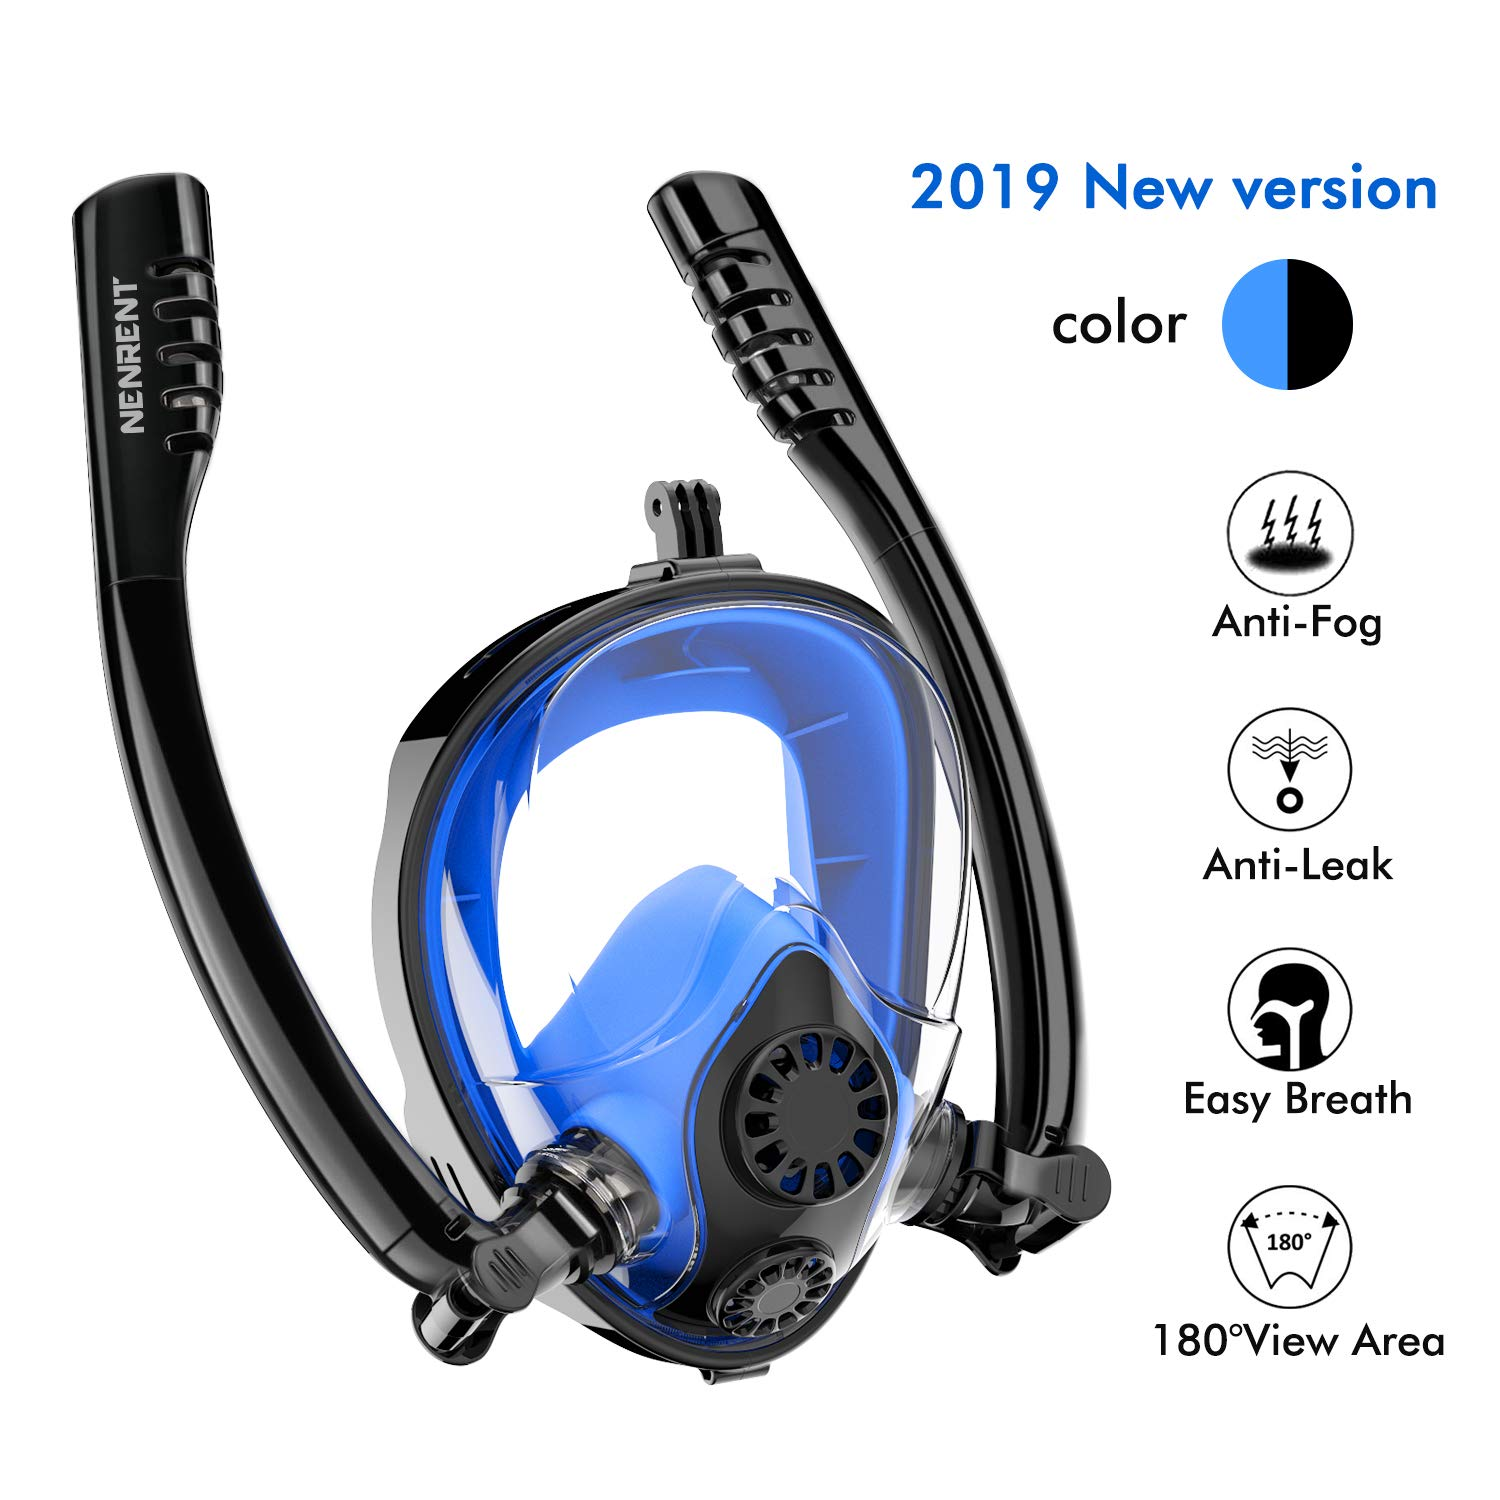 NENRENT Snorkel Mask - Double Snorkel Full Face Snorkeling Mask 180°Panoramic View Scuba Diving Mask with Camera Mount for Adults Easy Breathe, Anti-Fog Anti-Leak Gear for Free Diving Swimming by NENRENT